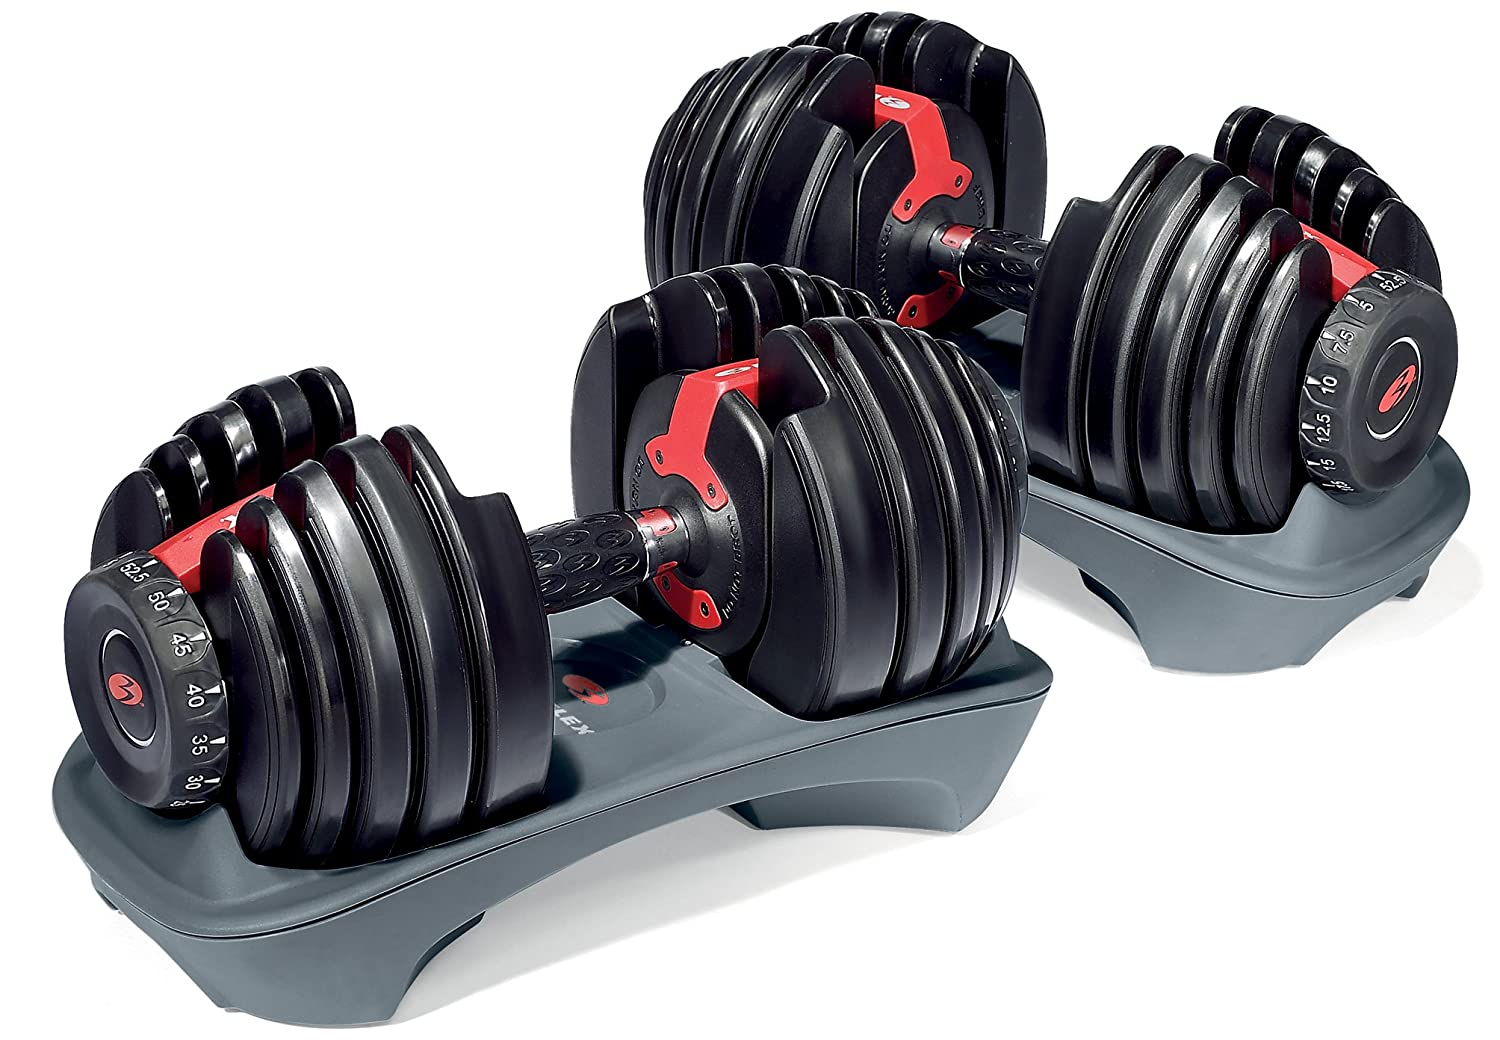 Bowflex SelectTech Adjustable Dumbbell Set